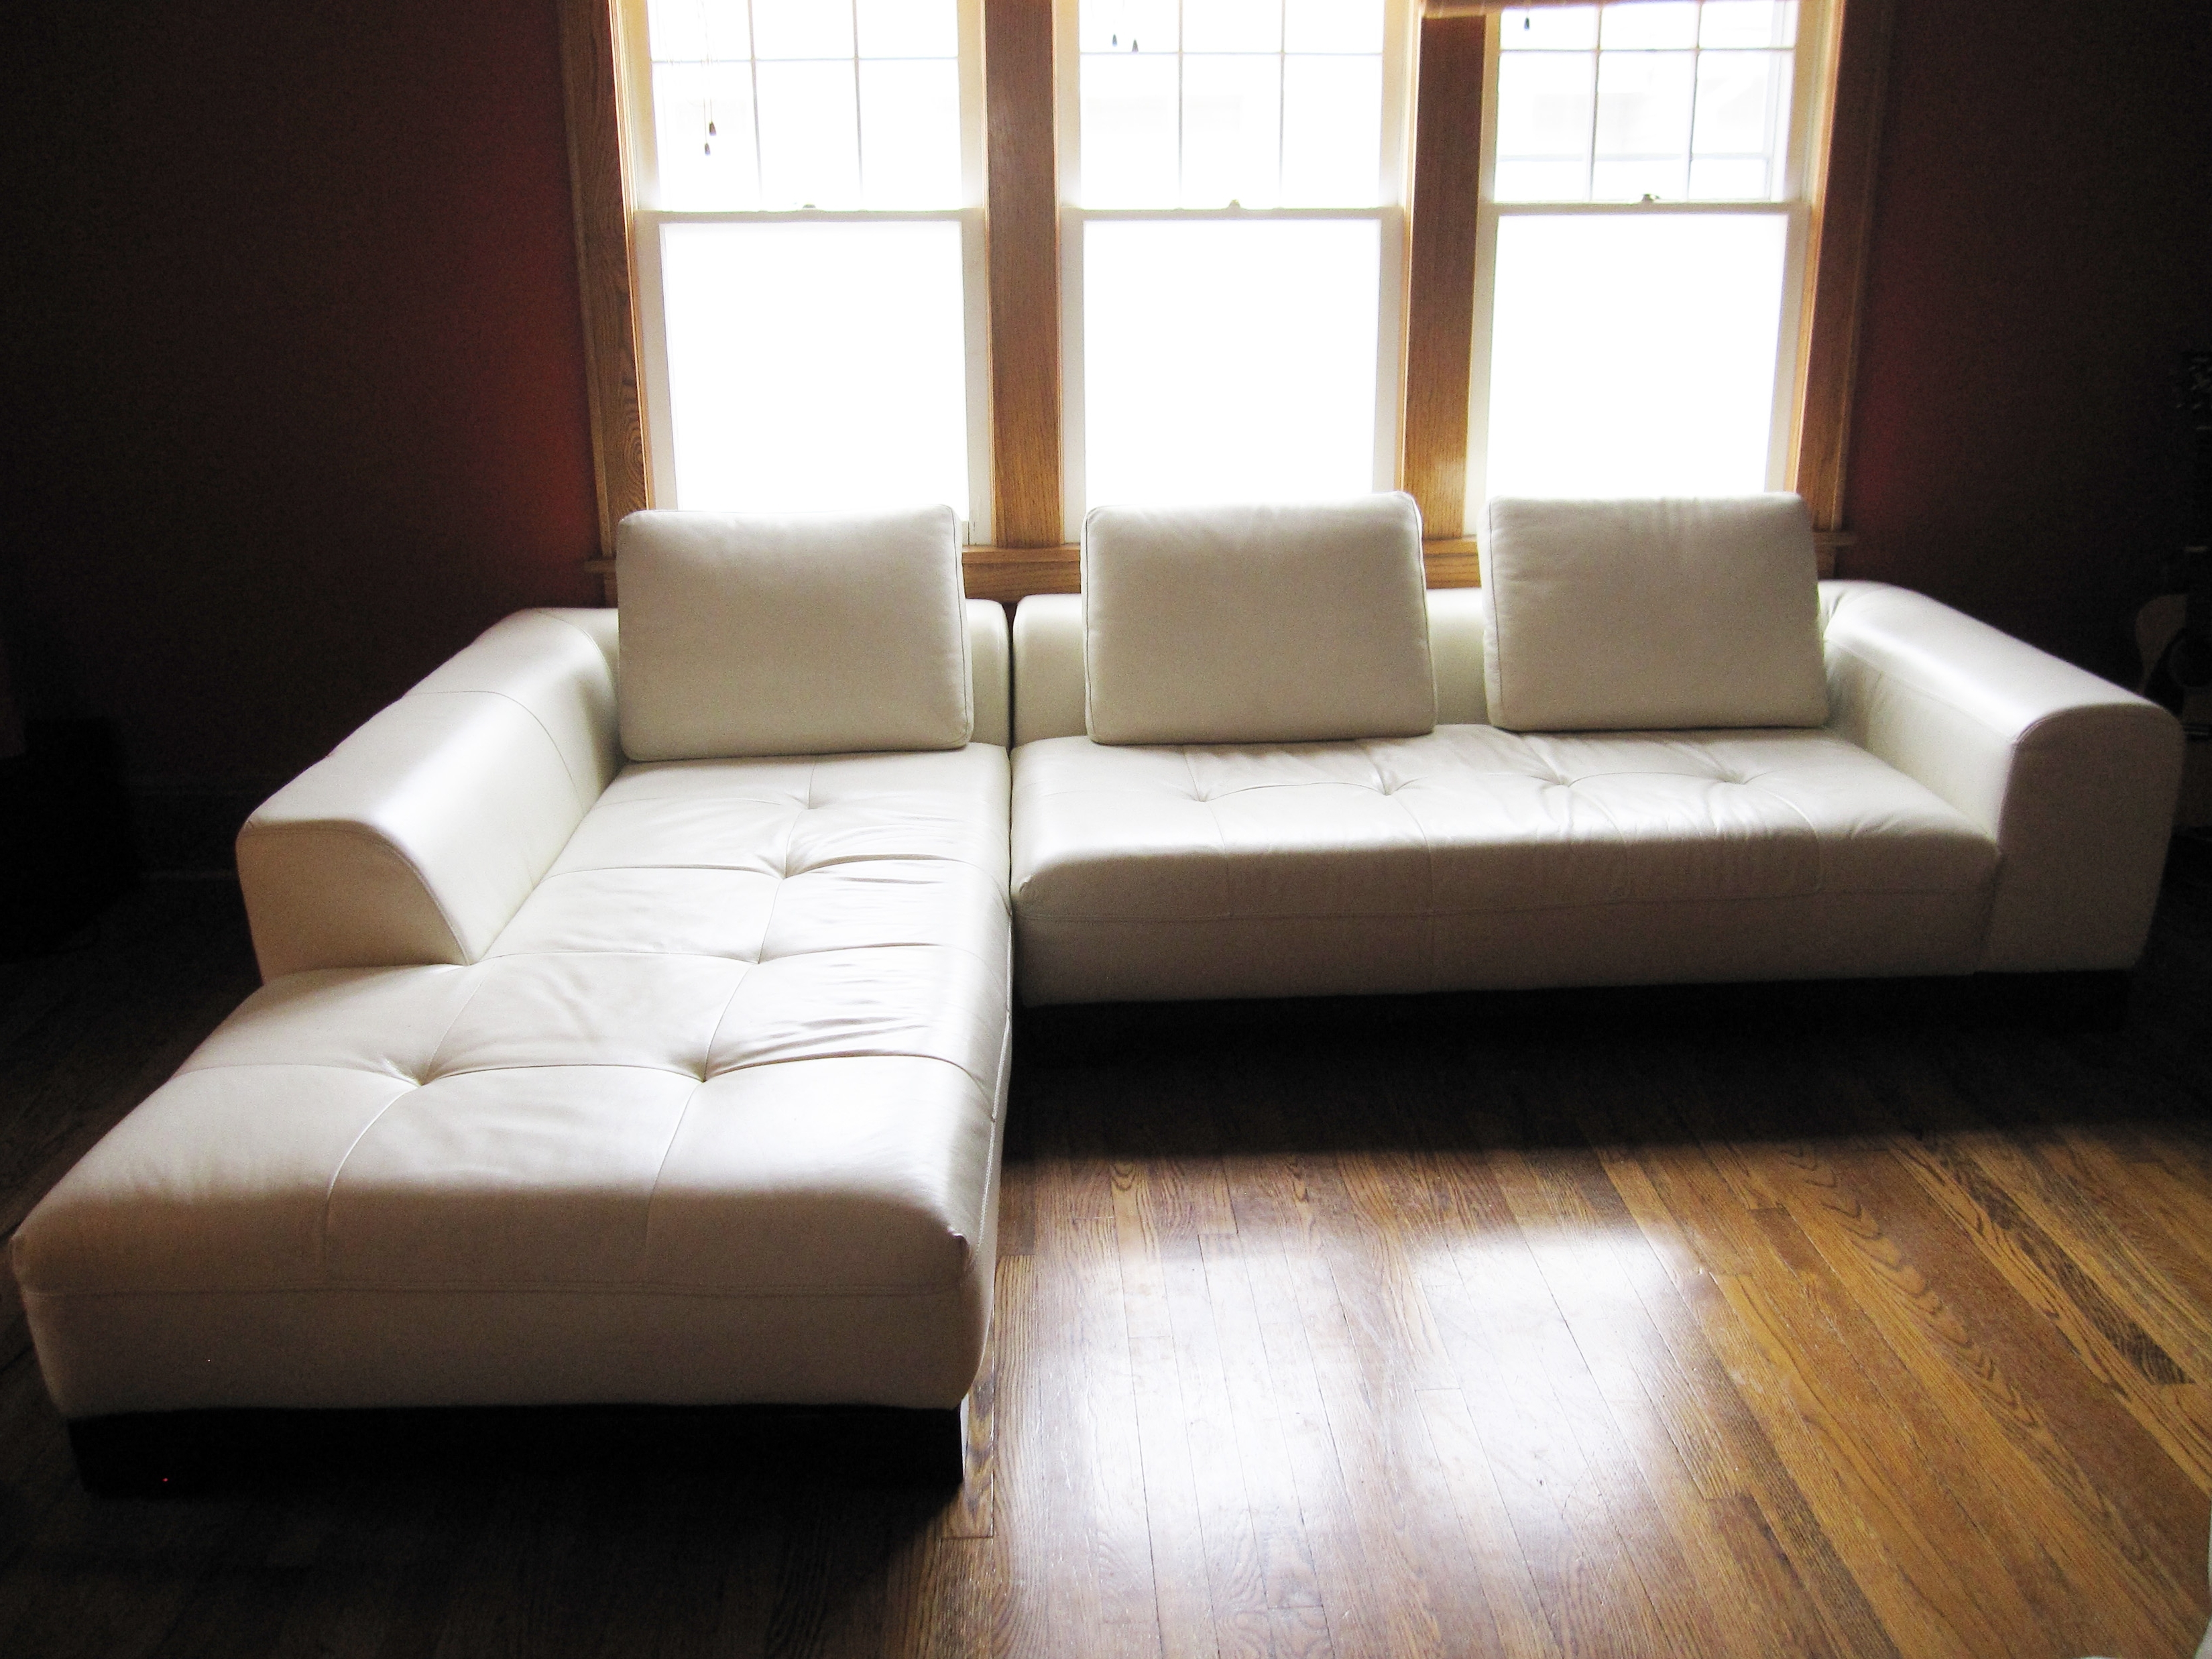 Trendy High Point Nc Sectional Sofas Inside Sofa Leatherry Sleeper Sectional Sofas For Small Spaces Furniture (View 17 of 20)